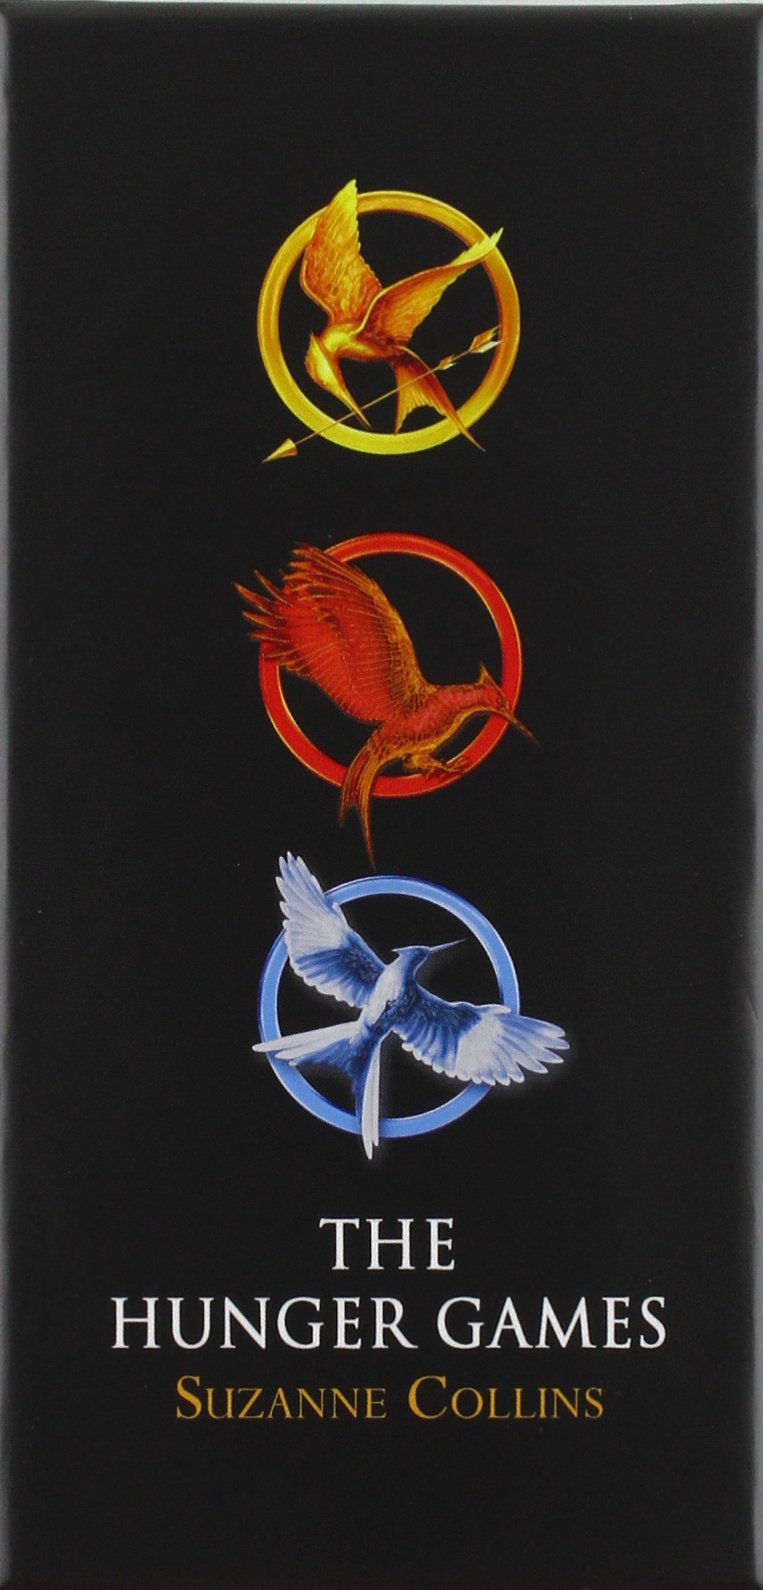 Book Cover Series Games ~ The hunger games series book cover pixshark